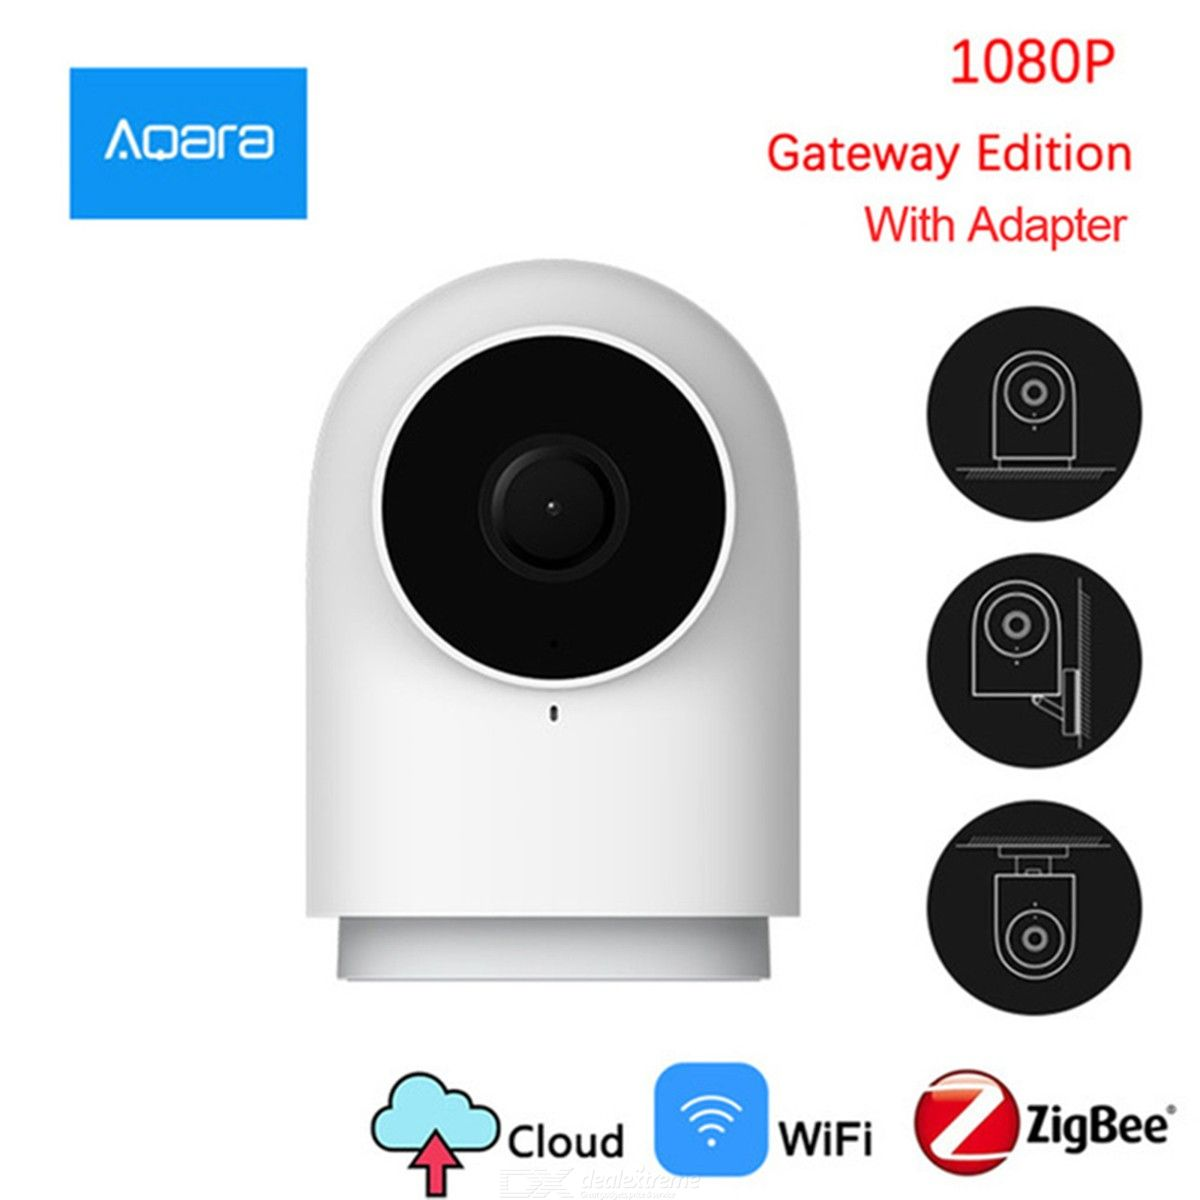 Xiaomi Aqara G2 1080P Home Surveillance With Motion Detection Night Vision Two-way Talk - Gateway Edition Chinese 2-Prong Plug